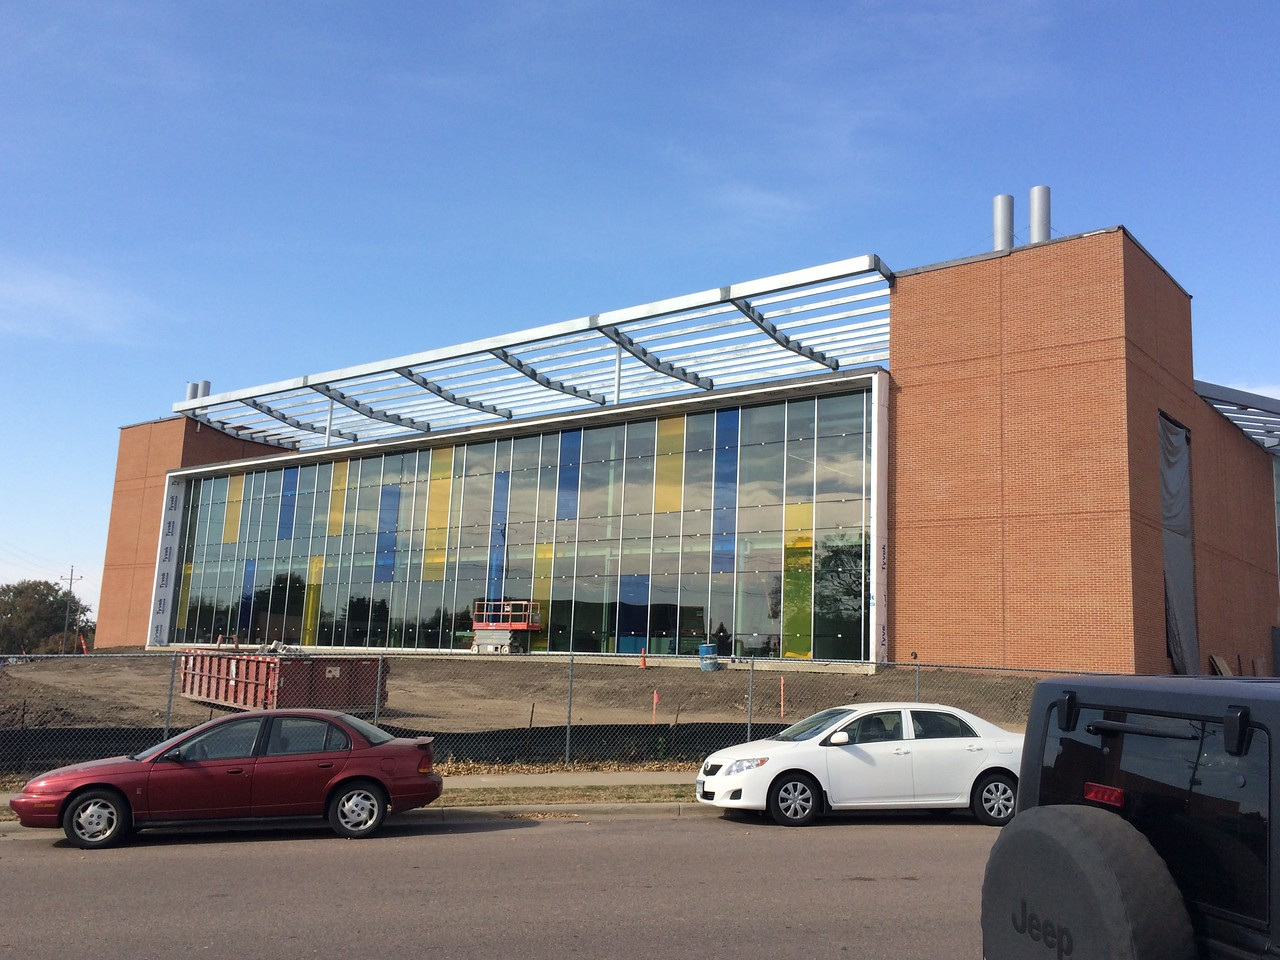 The Froiland Science Complex